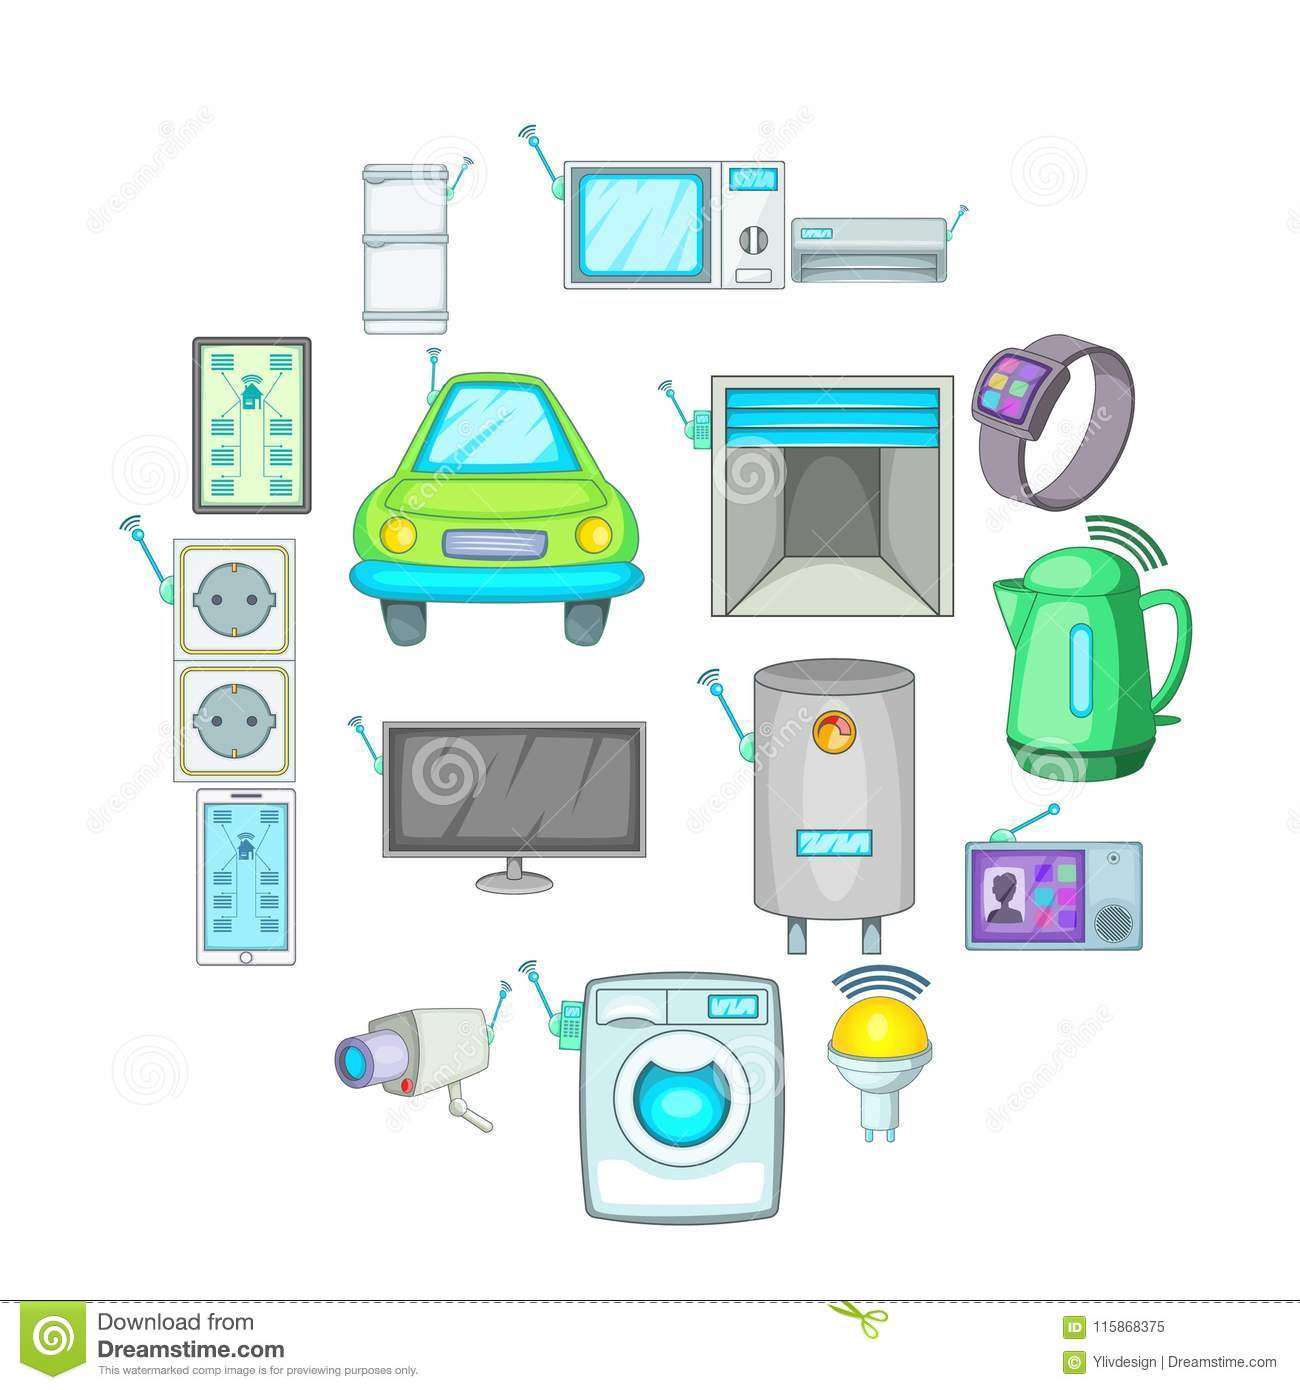 smart home system icons set cartoon style stock vector illustration of microwave electronic. Black Bedroom Furniture Sets. Home Design Ideas